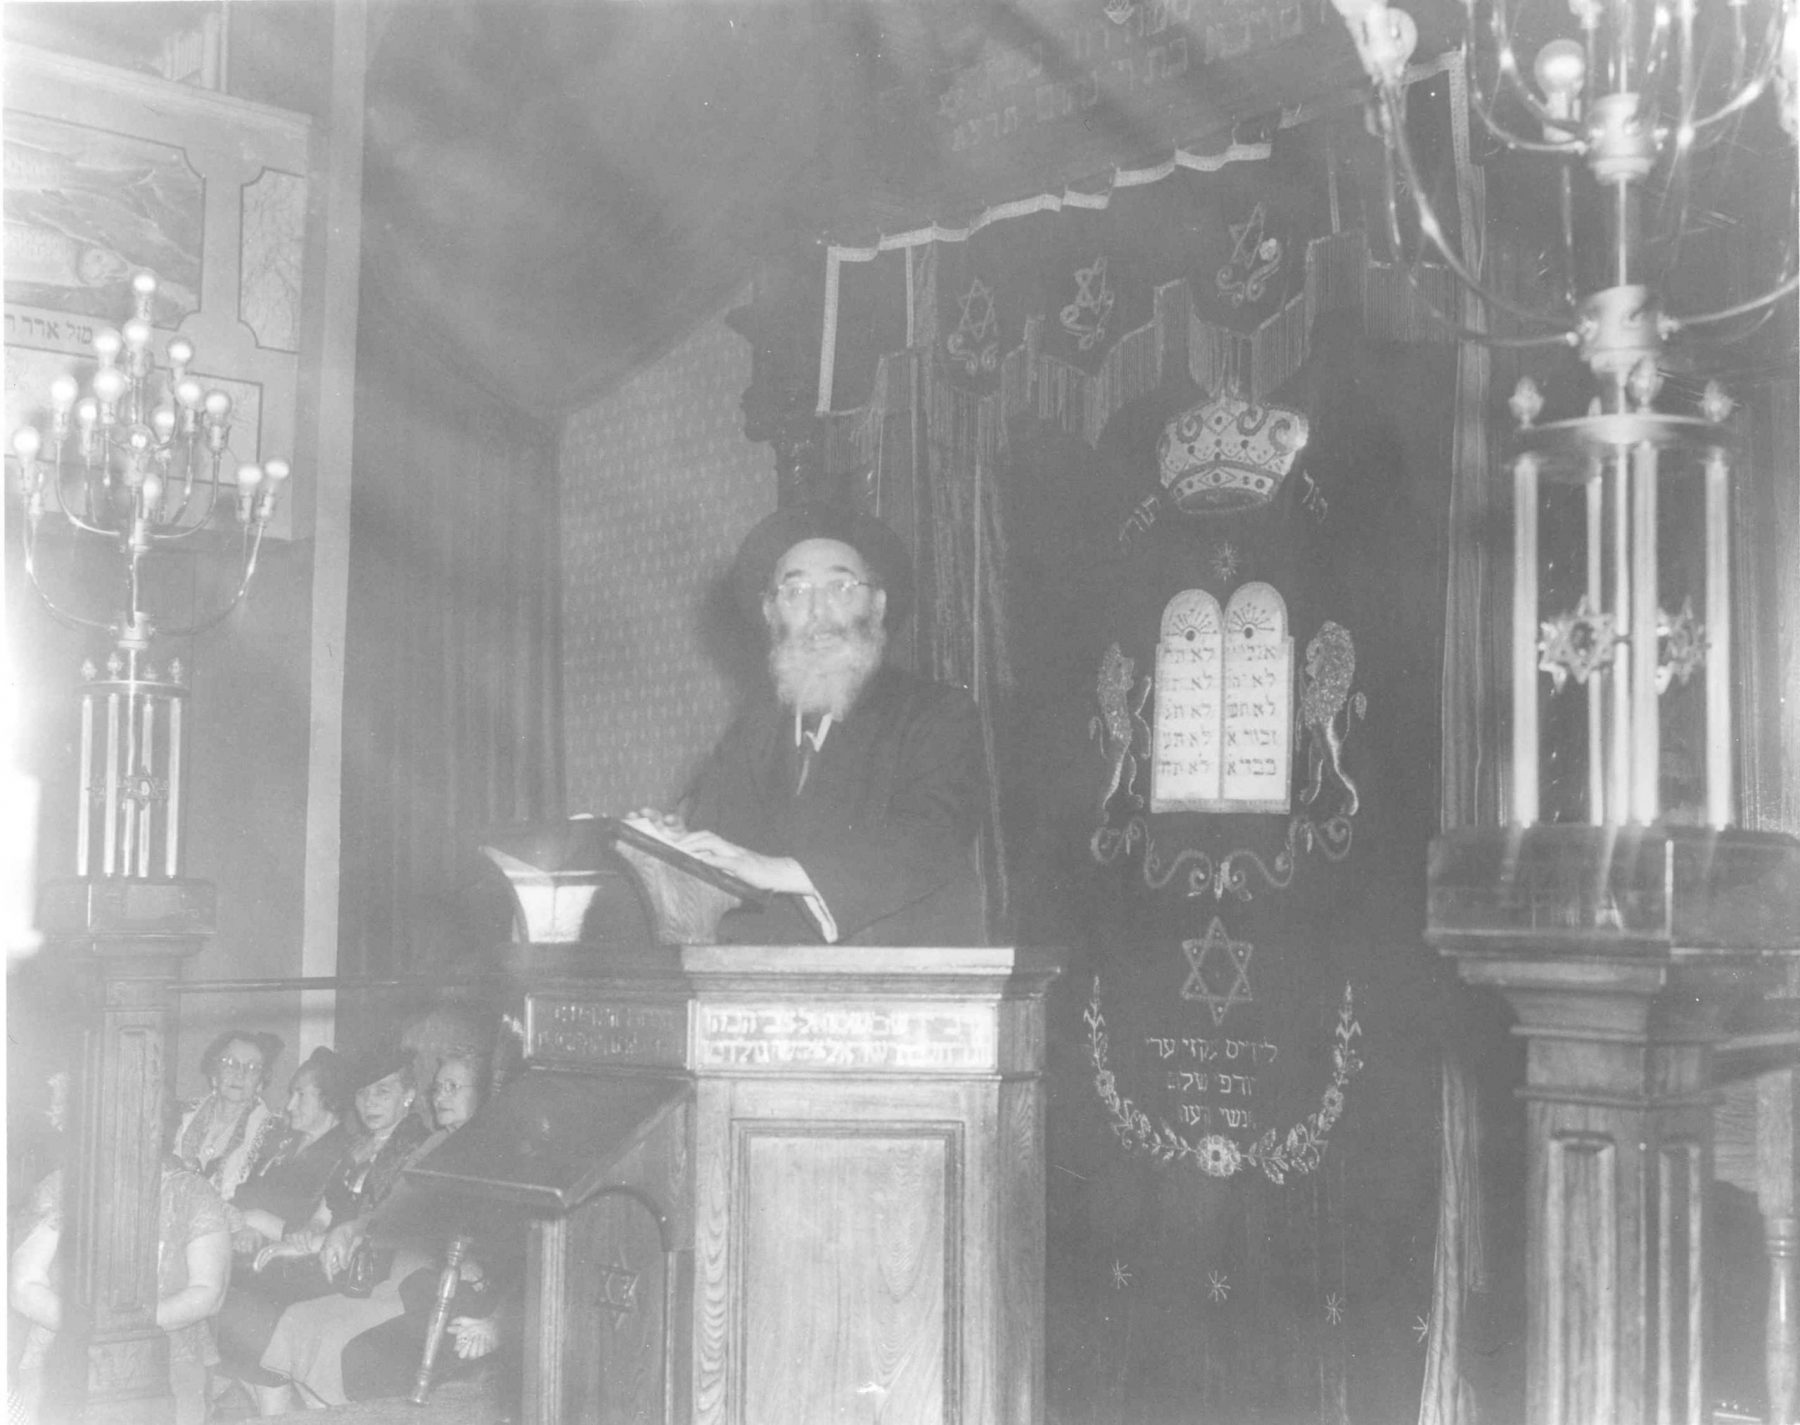 Rabbi Solomon Langner, Kiever Shul, 1950s. Rabbi Langner immigrated to Toronto from Strettin, Poland in 1923. He served the Kiever Shul as a full-time rabbi from 1929 until his death in 1973.   OJA, item 533.